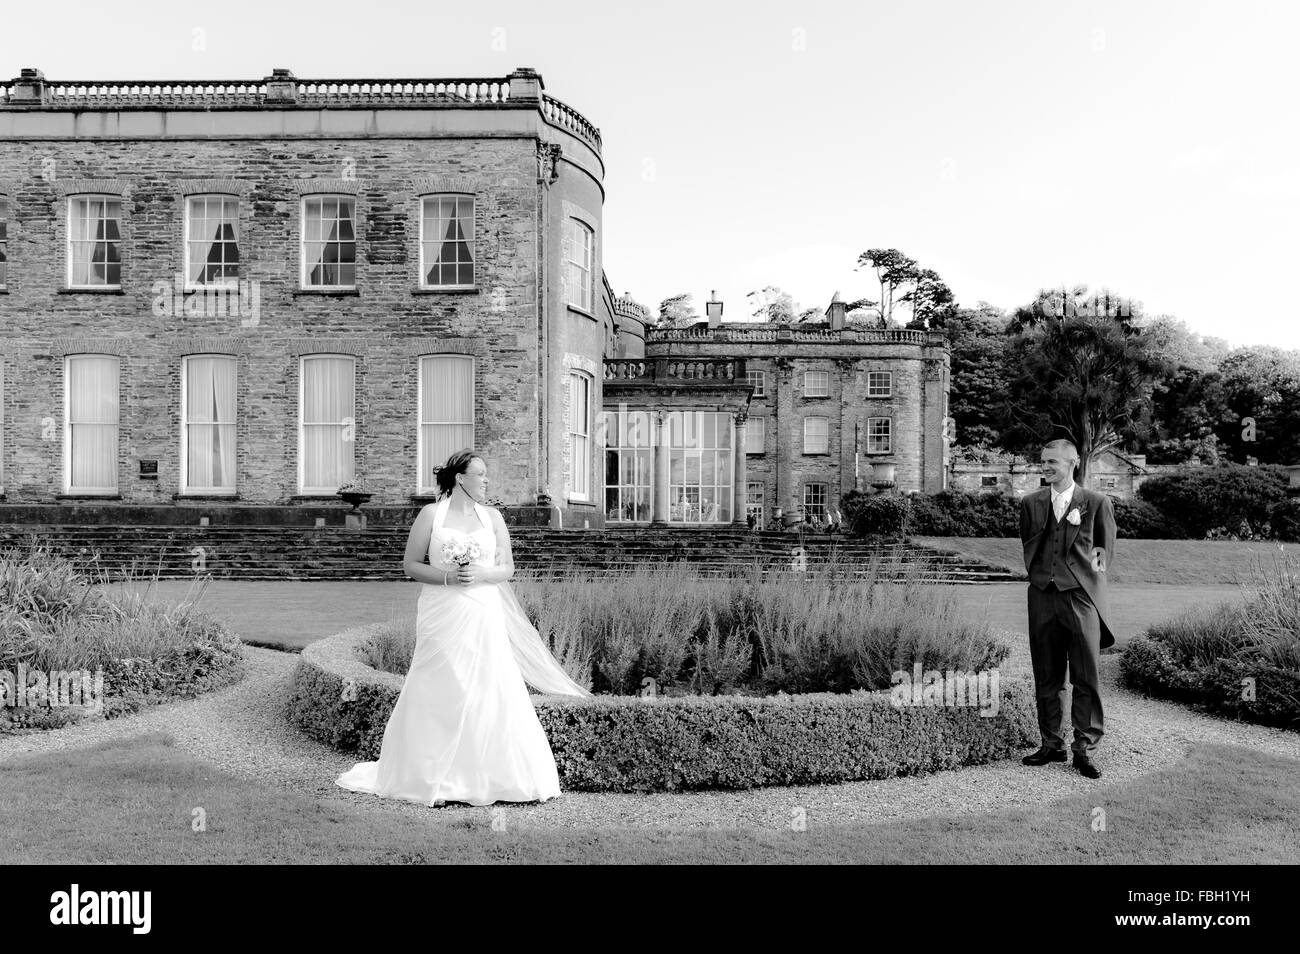 Bride and Groom are pictured in the grounds of Bantry House and Gardens, West Cork, Ireland, on their wedding day. - Stock Image